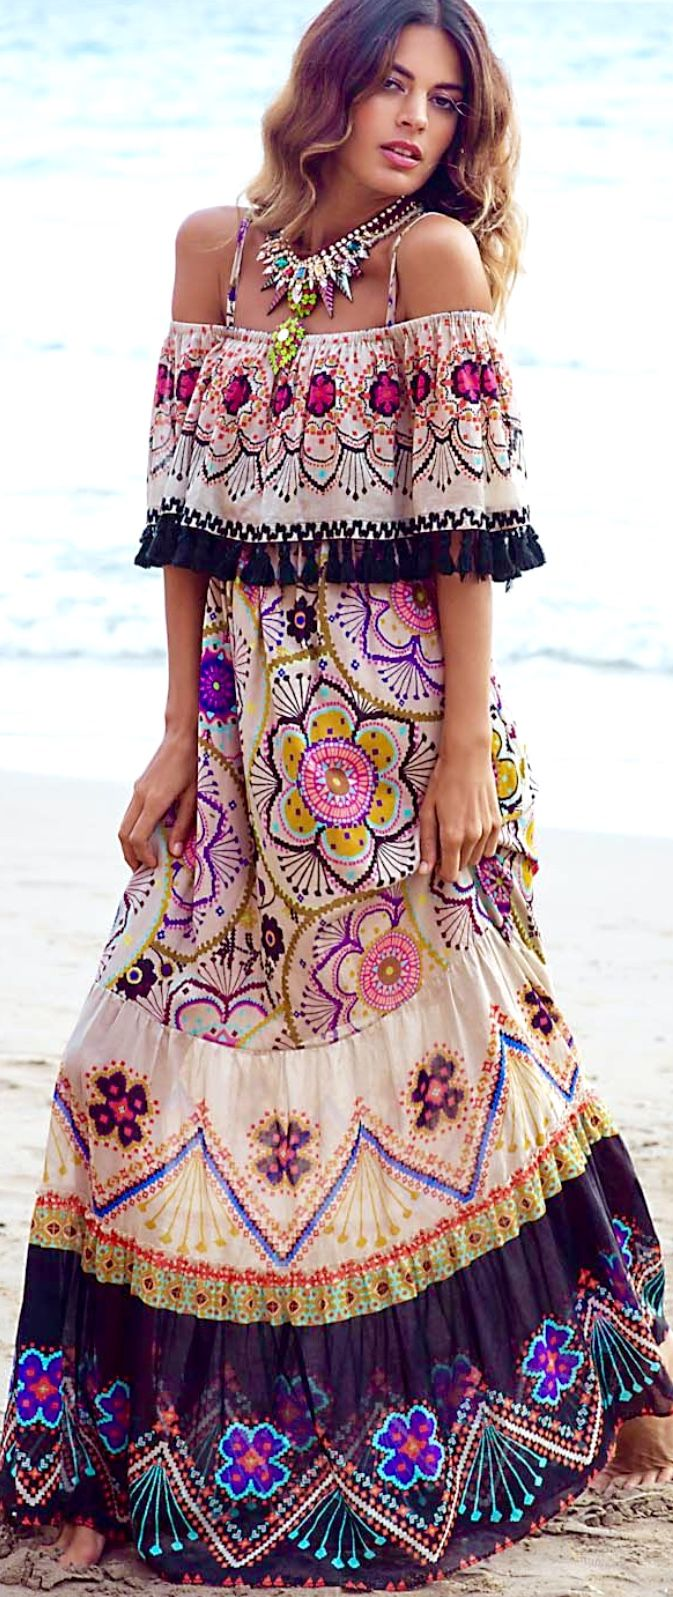 New modern dress styles - Sexy Off The Shoulder Maxi Dress With Ethnic Inspired Tribal Necklace For The New Modern Hippie